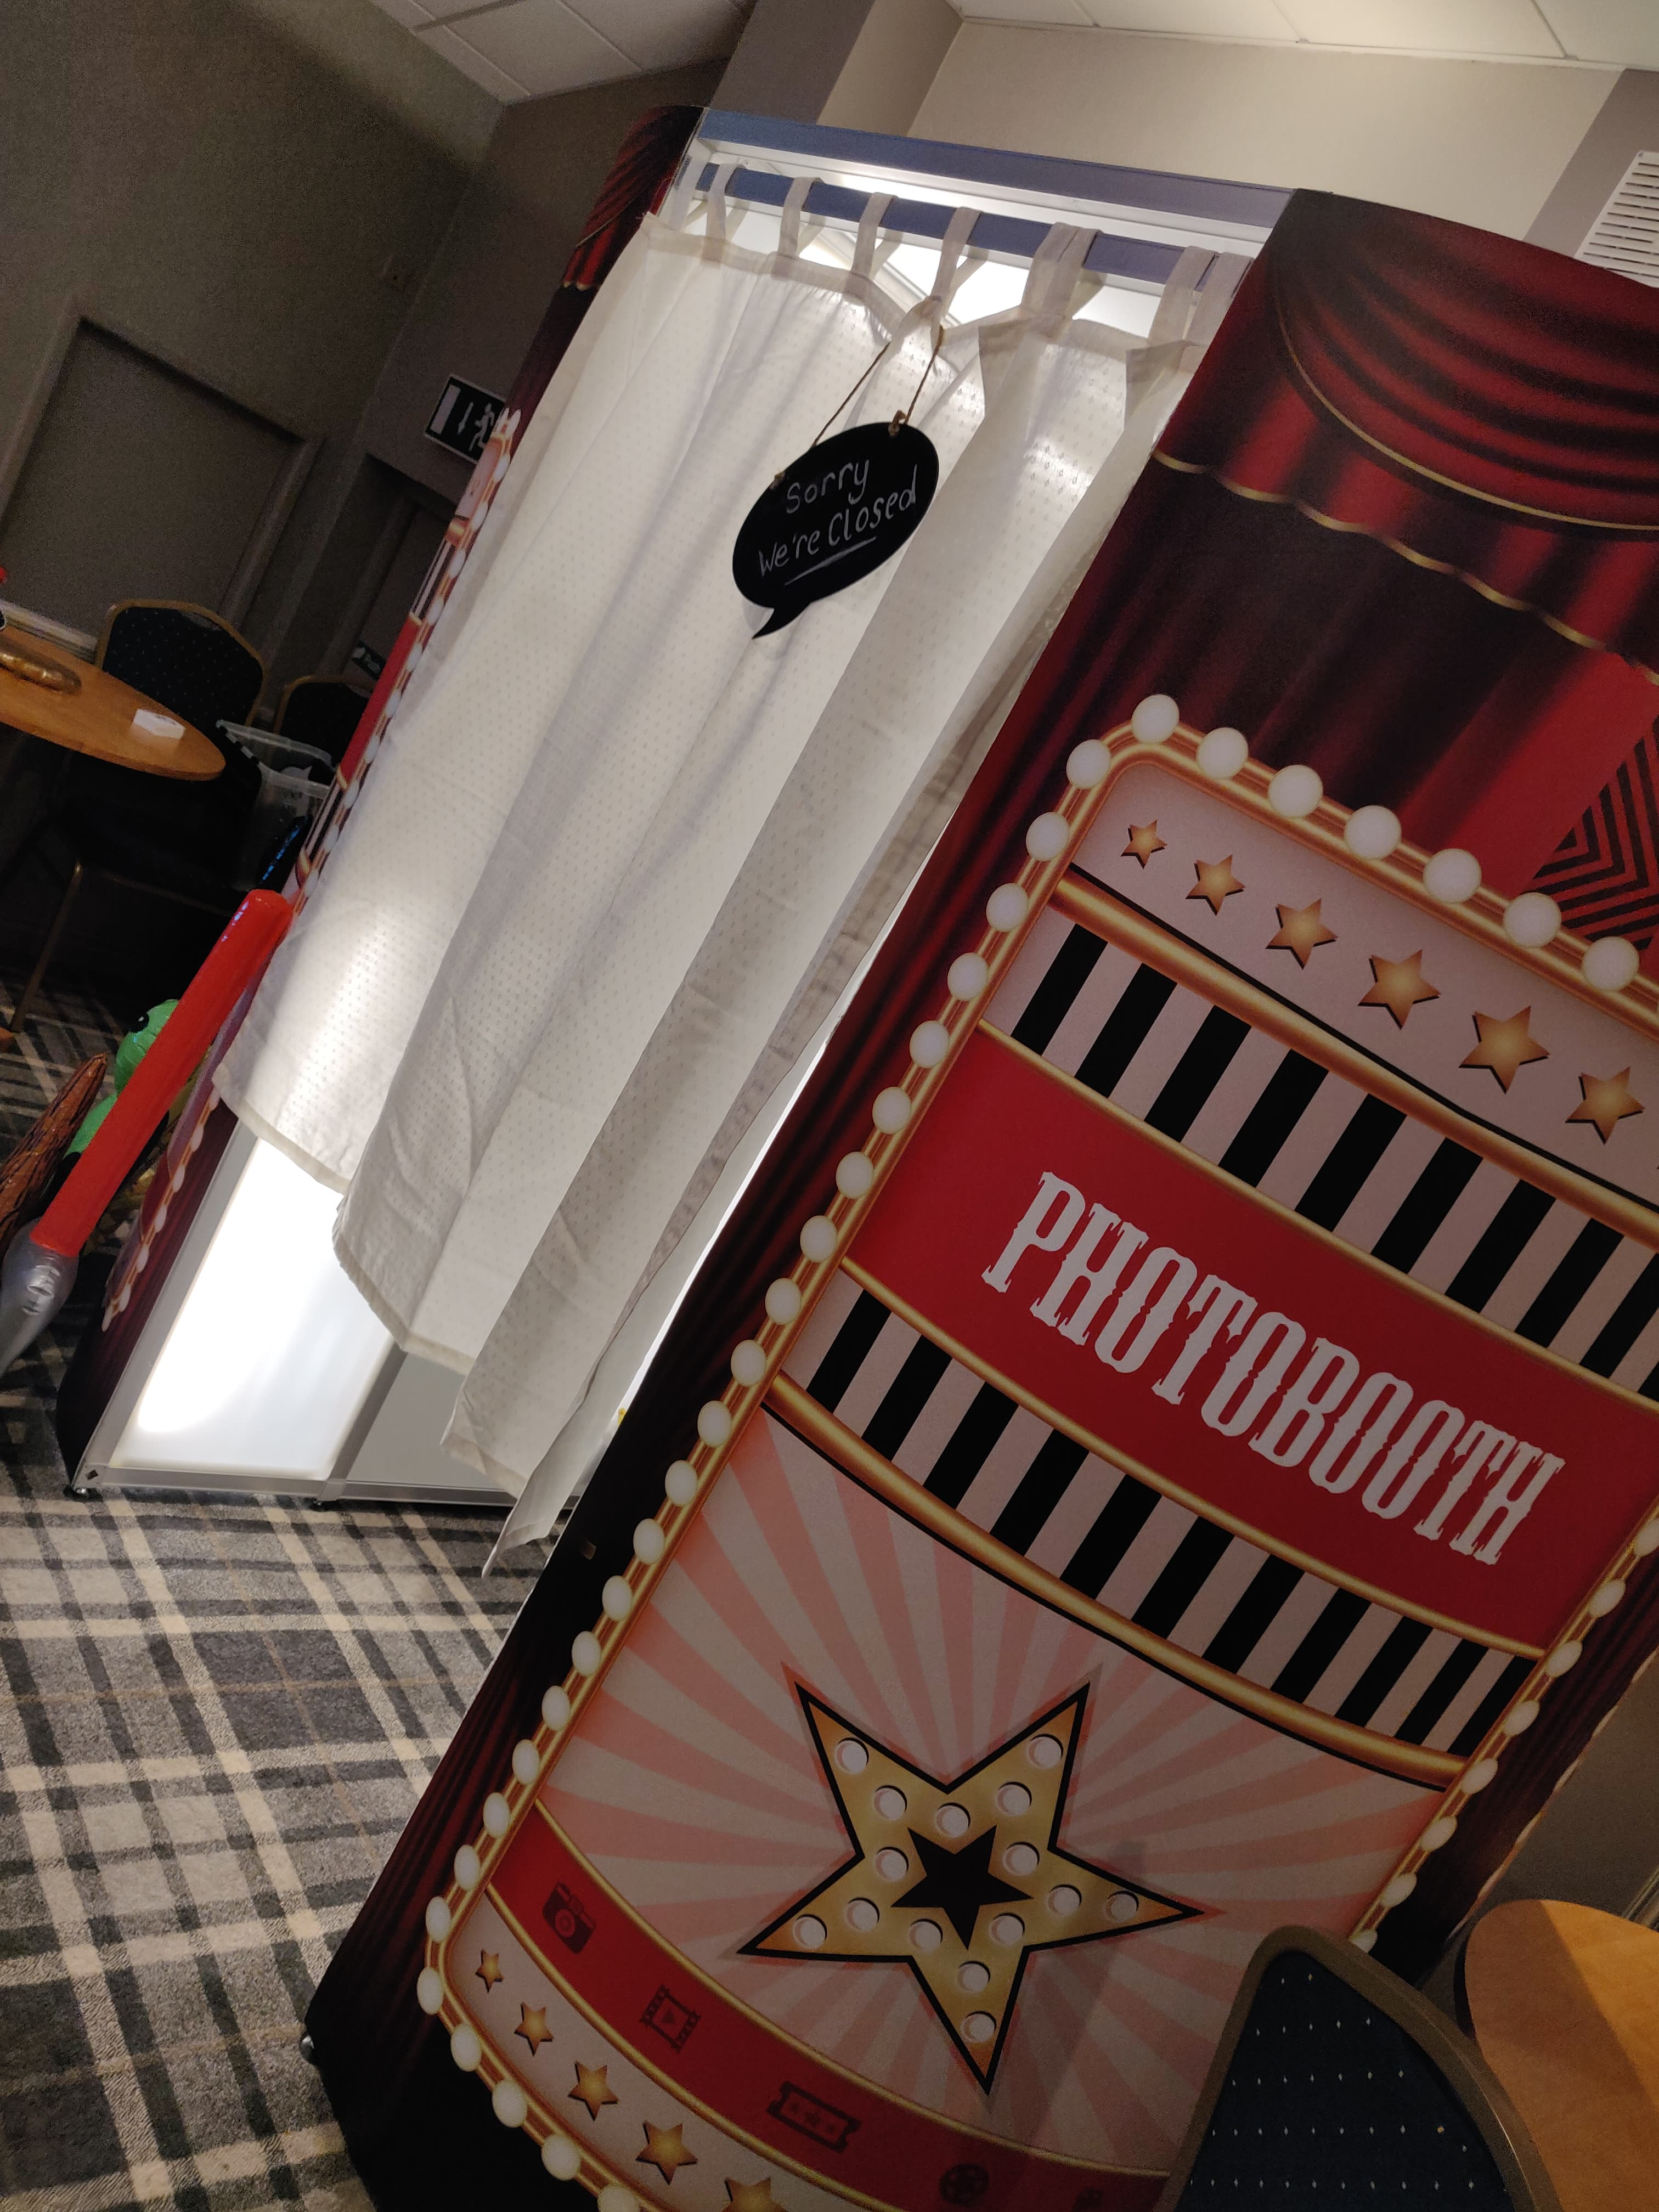 Showbiz Photo Booth